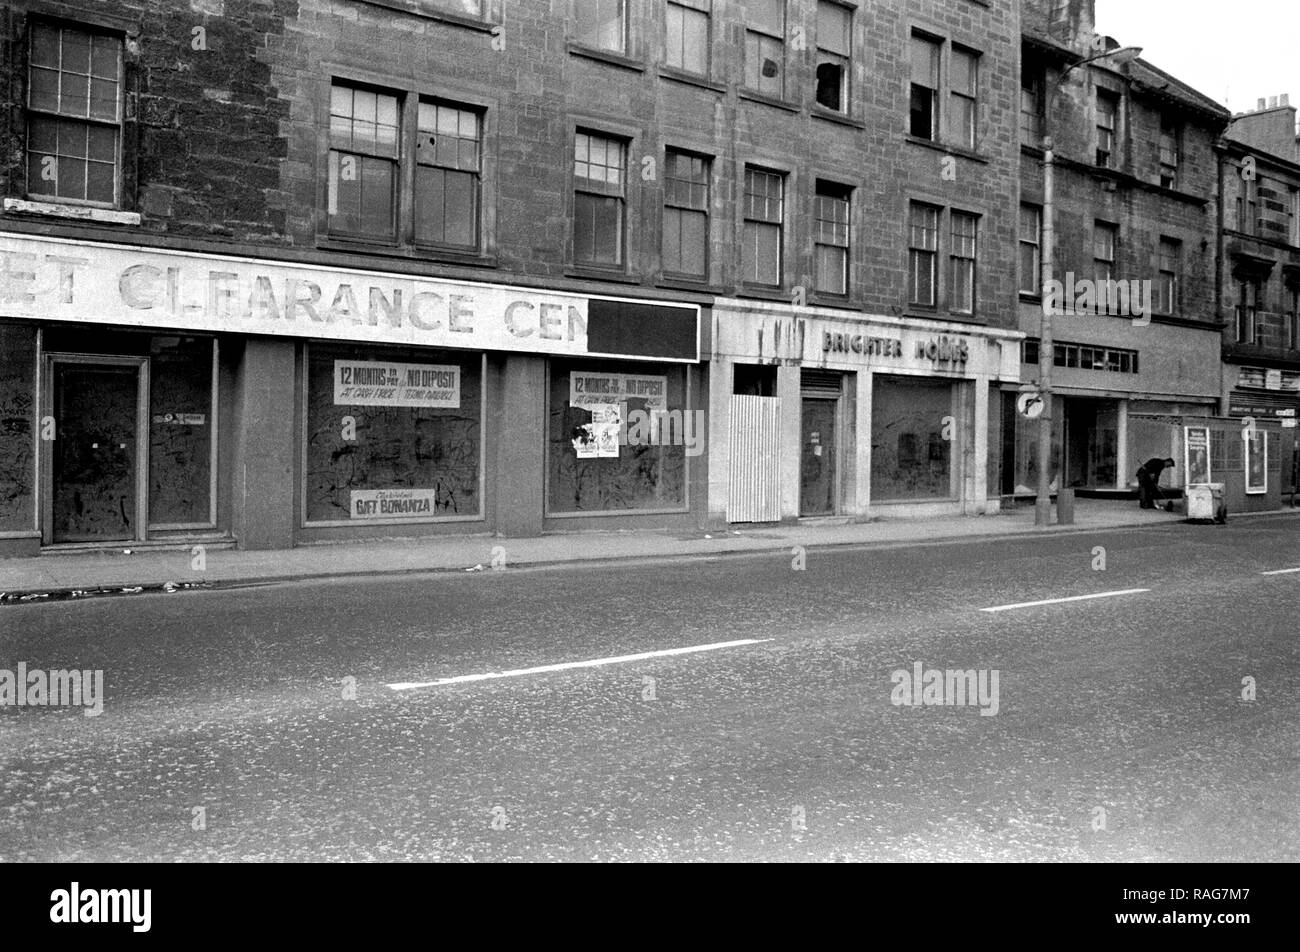 Shops and Tenements on Glasgow Road, Clydebank awaiting demolition to make way for the Clydeside Expressway. 1979 Stock Photo